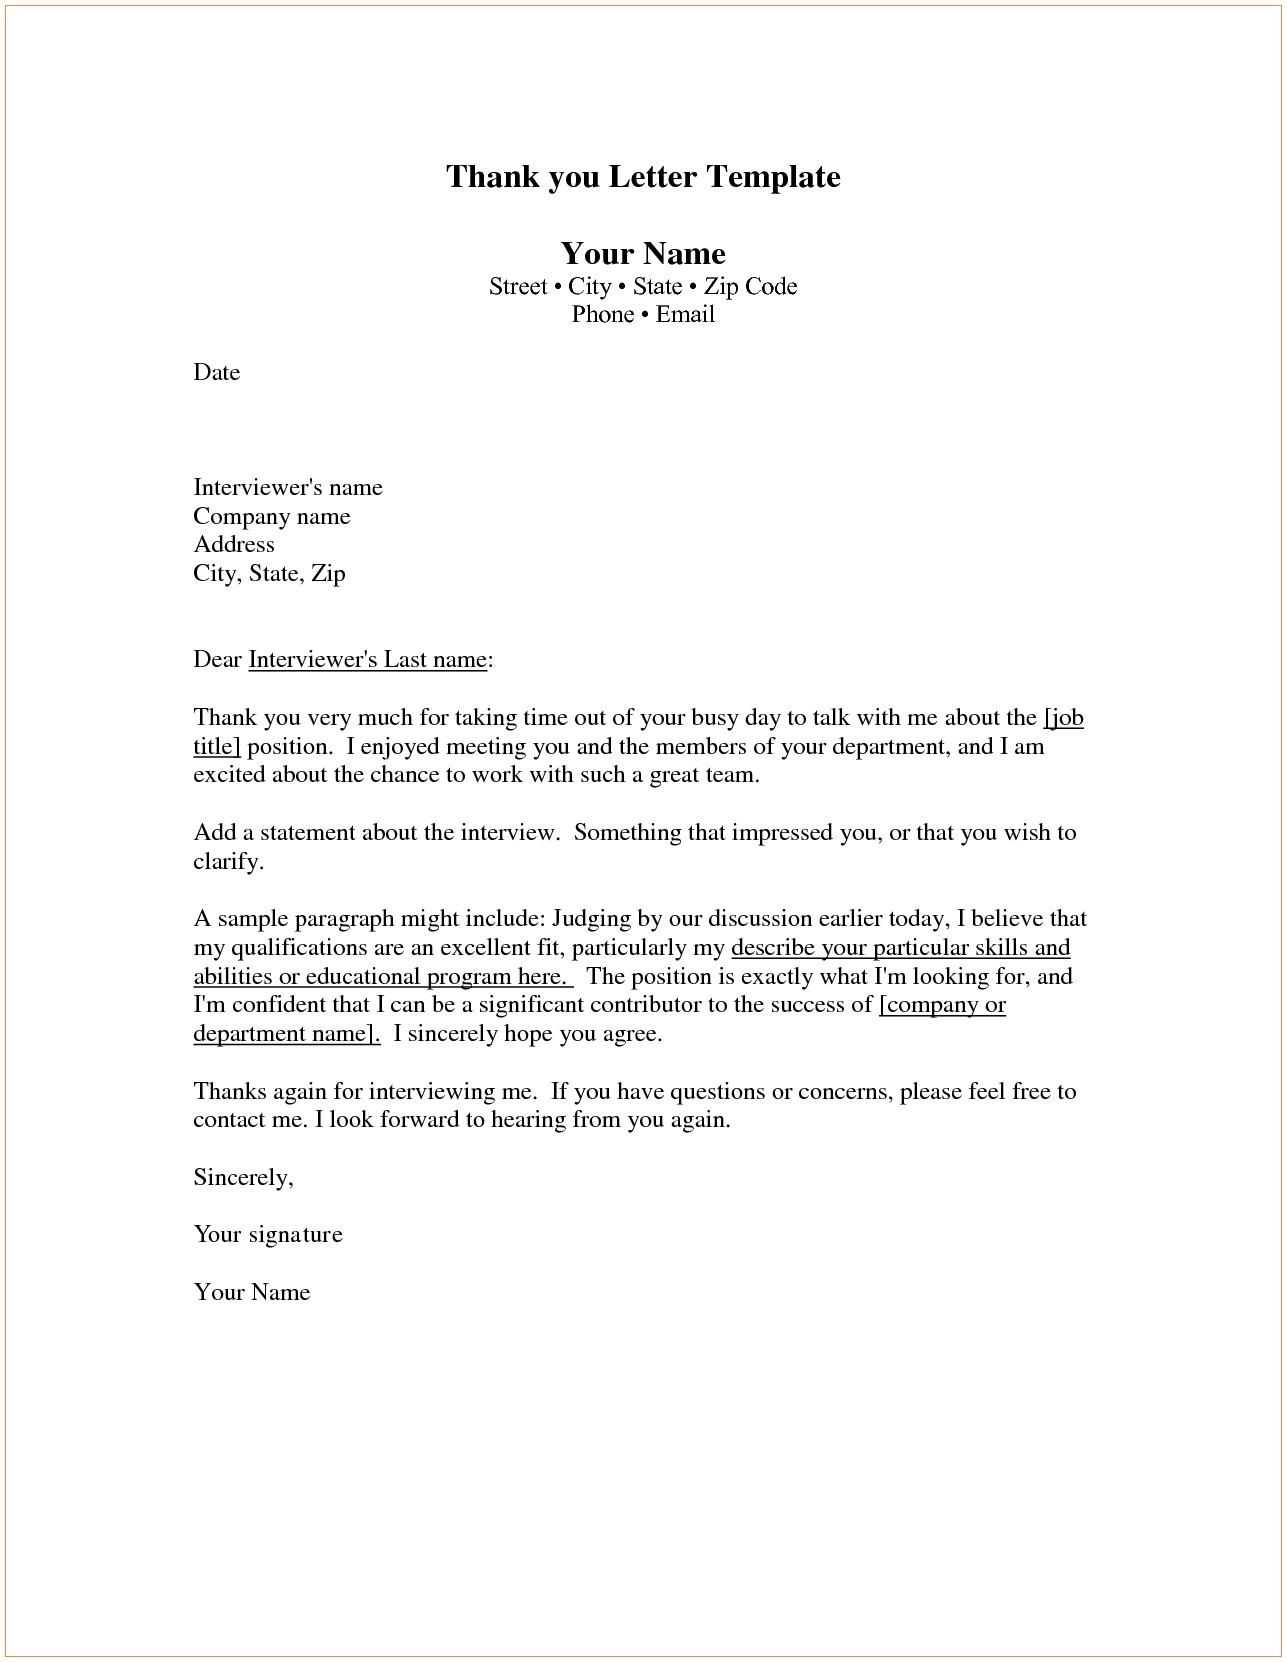 Vacation Request Letter Template - Time F Request Letter Luxury Http Jobsearch About Od Sampleletters